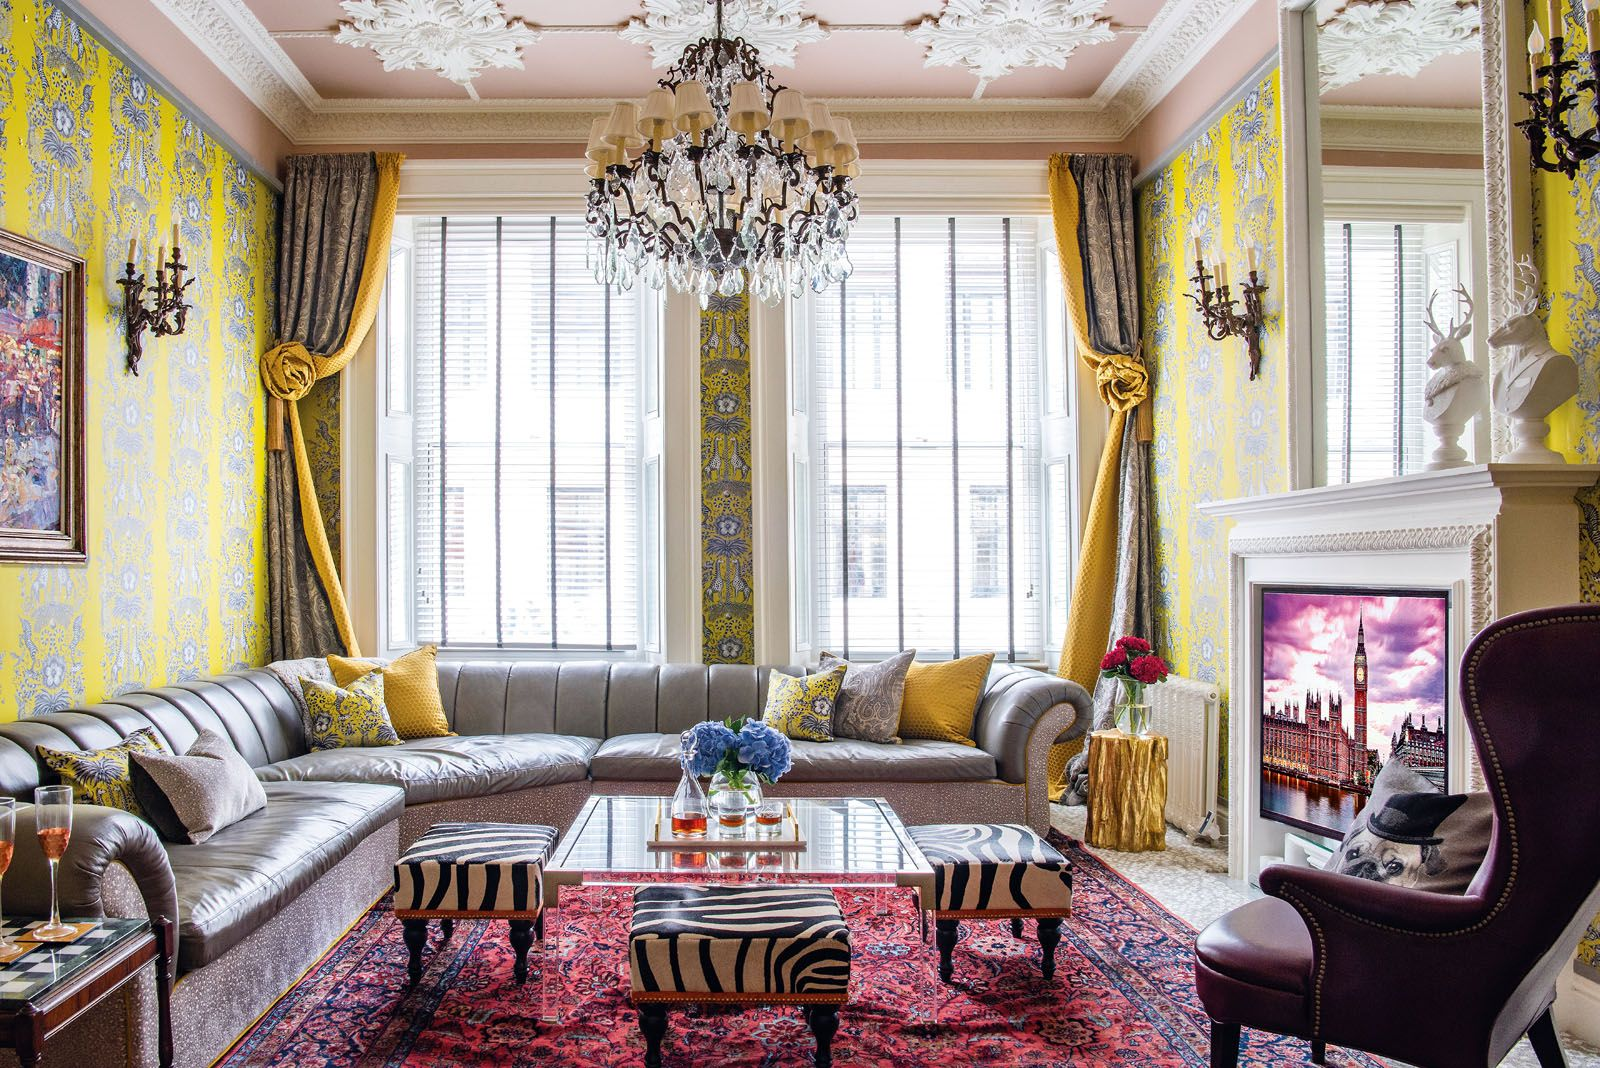 The Rococo rose plasterwork on the ceiling references the apartment's architectural heritage, while the spacious sectional sofa encourages family bonding in the living room. The yellow wallpaper was inspired by the work of British interior designer John Fowley